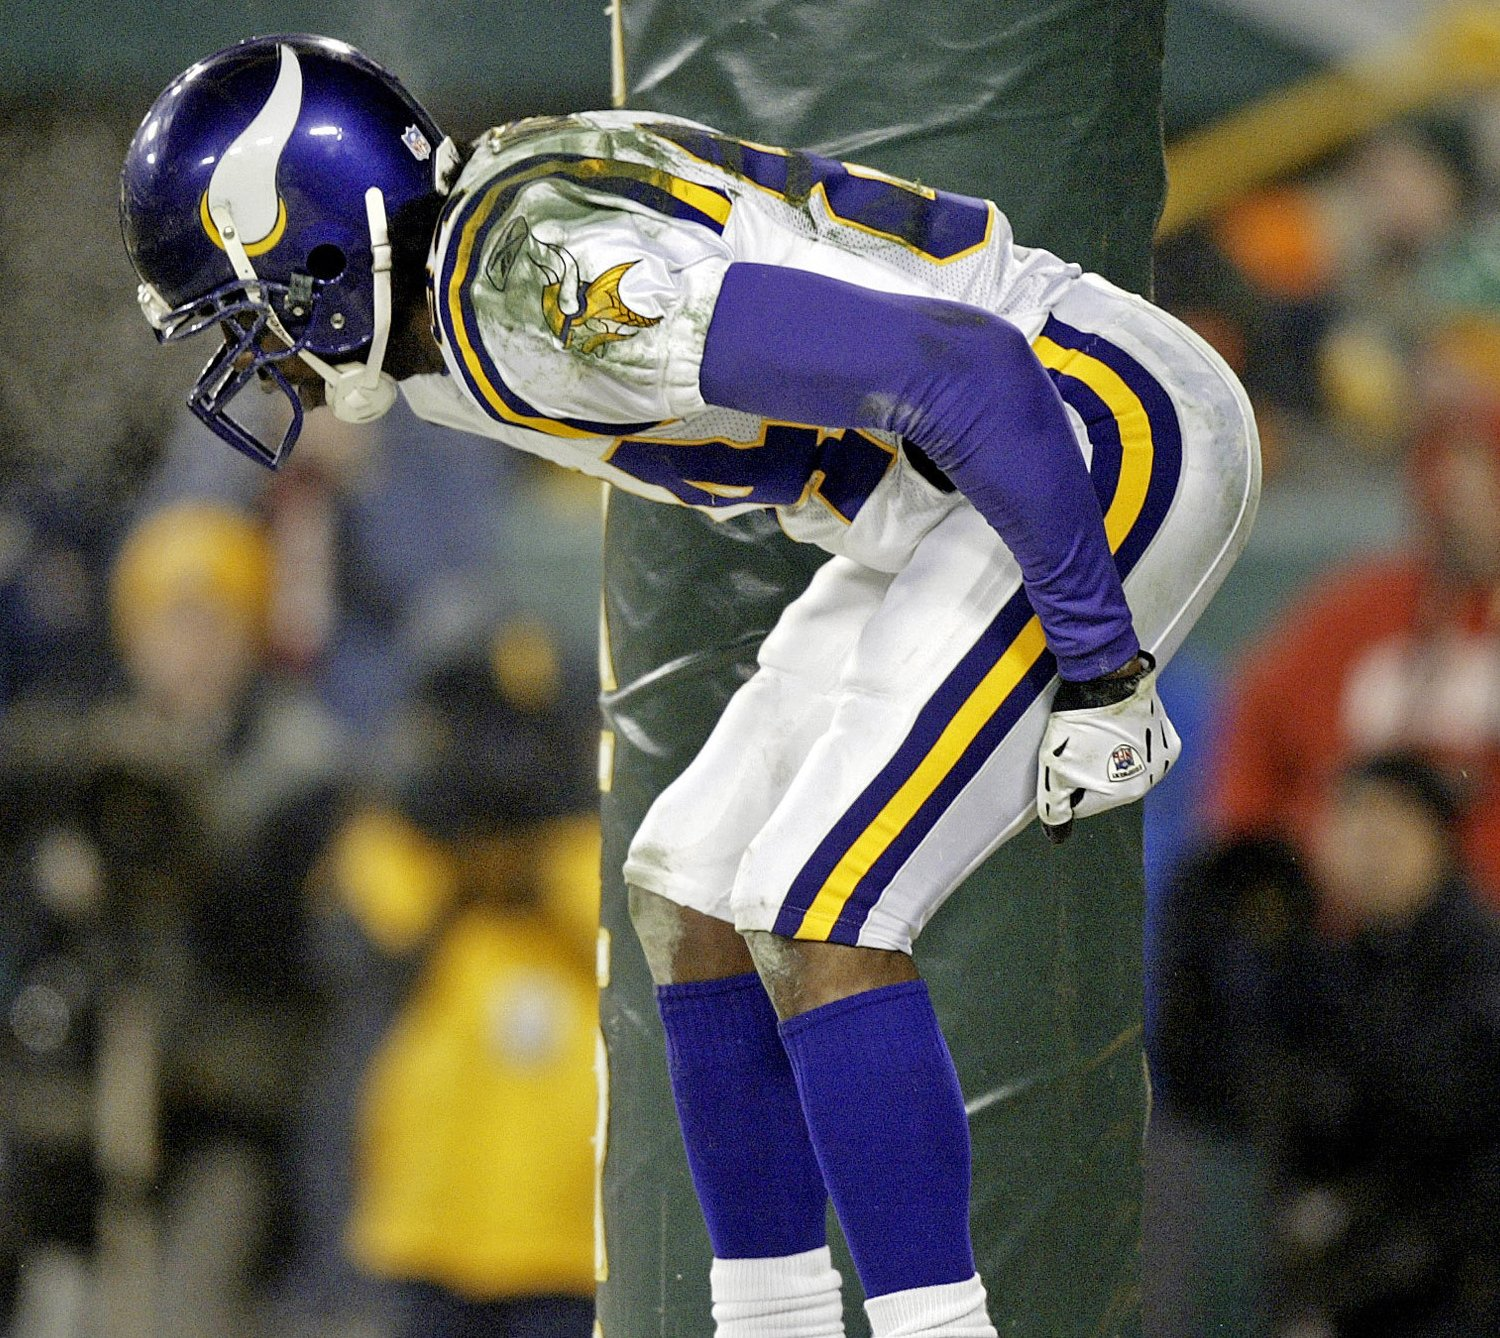 Mooning Over New Missoni: We Remember: 10th Anniversary Of Randy Moss 'Mooning